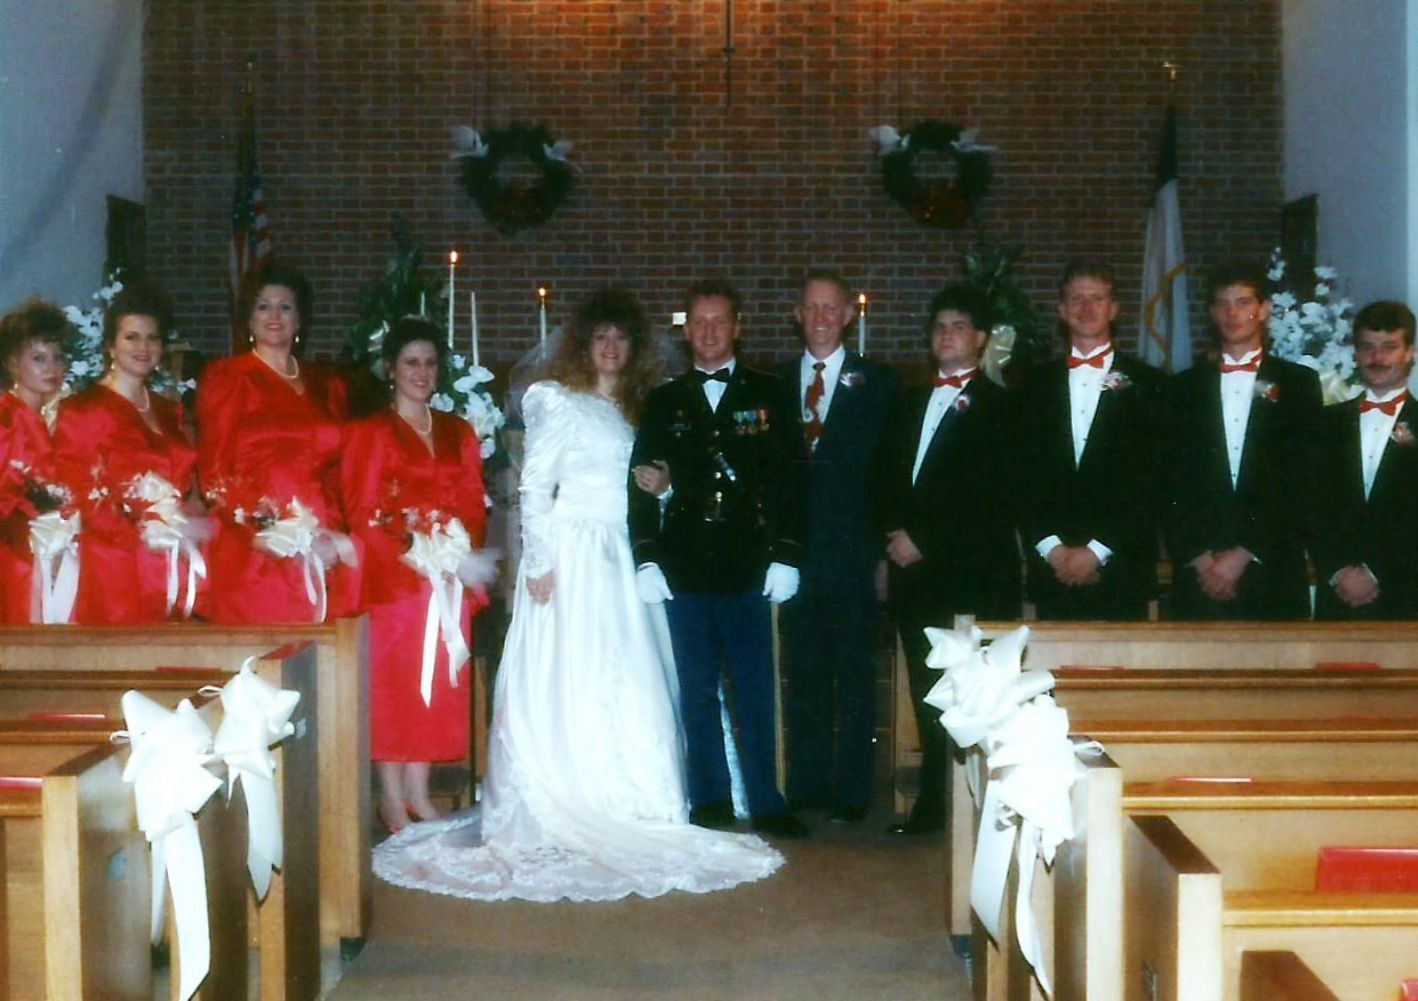 Larry and Michelle Jester wedding pictures i4aa.jpg